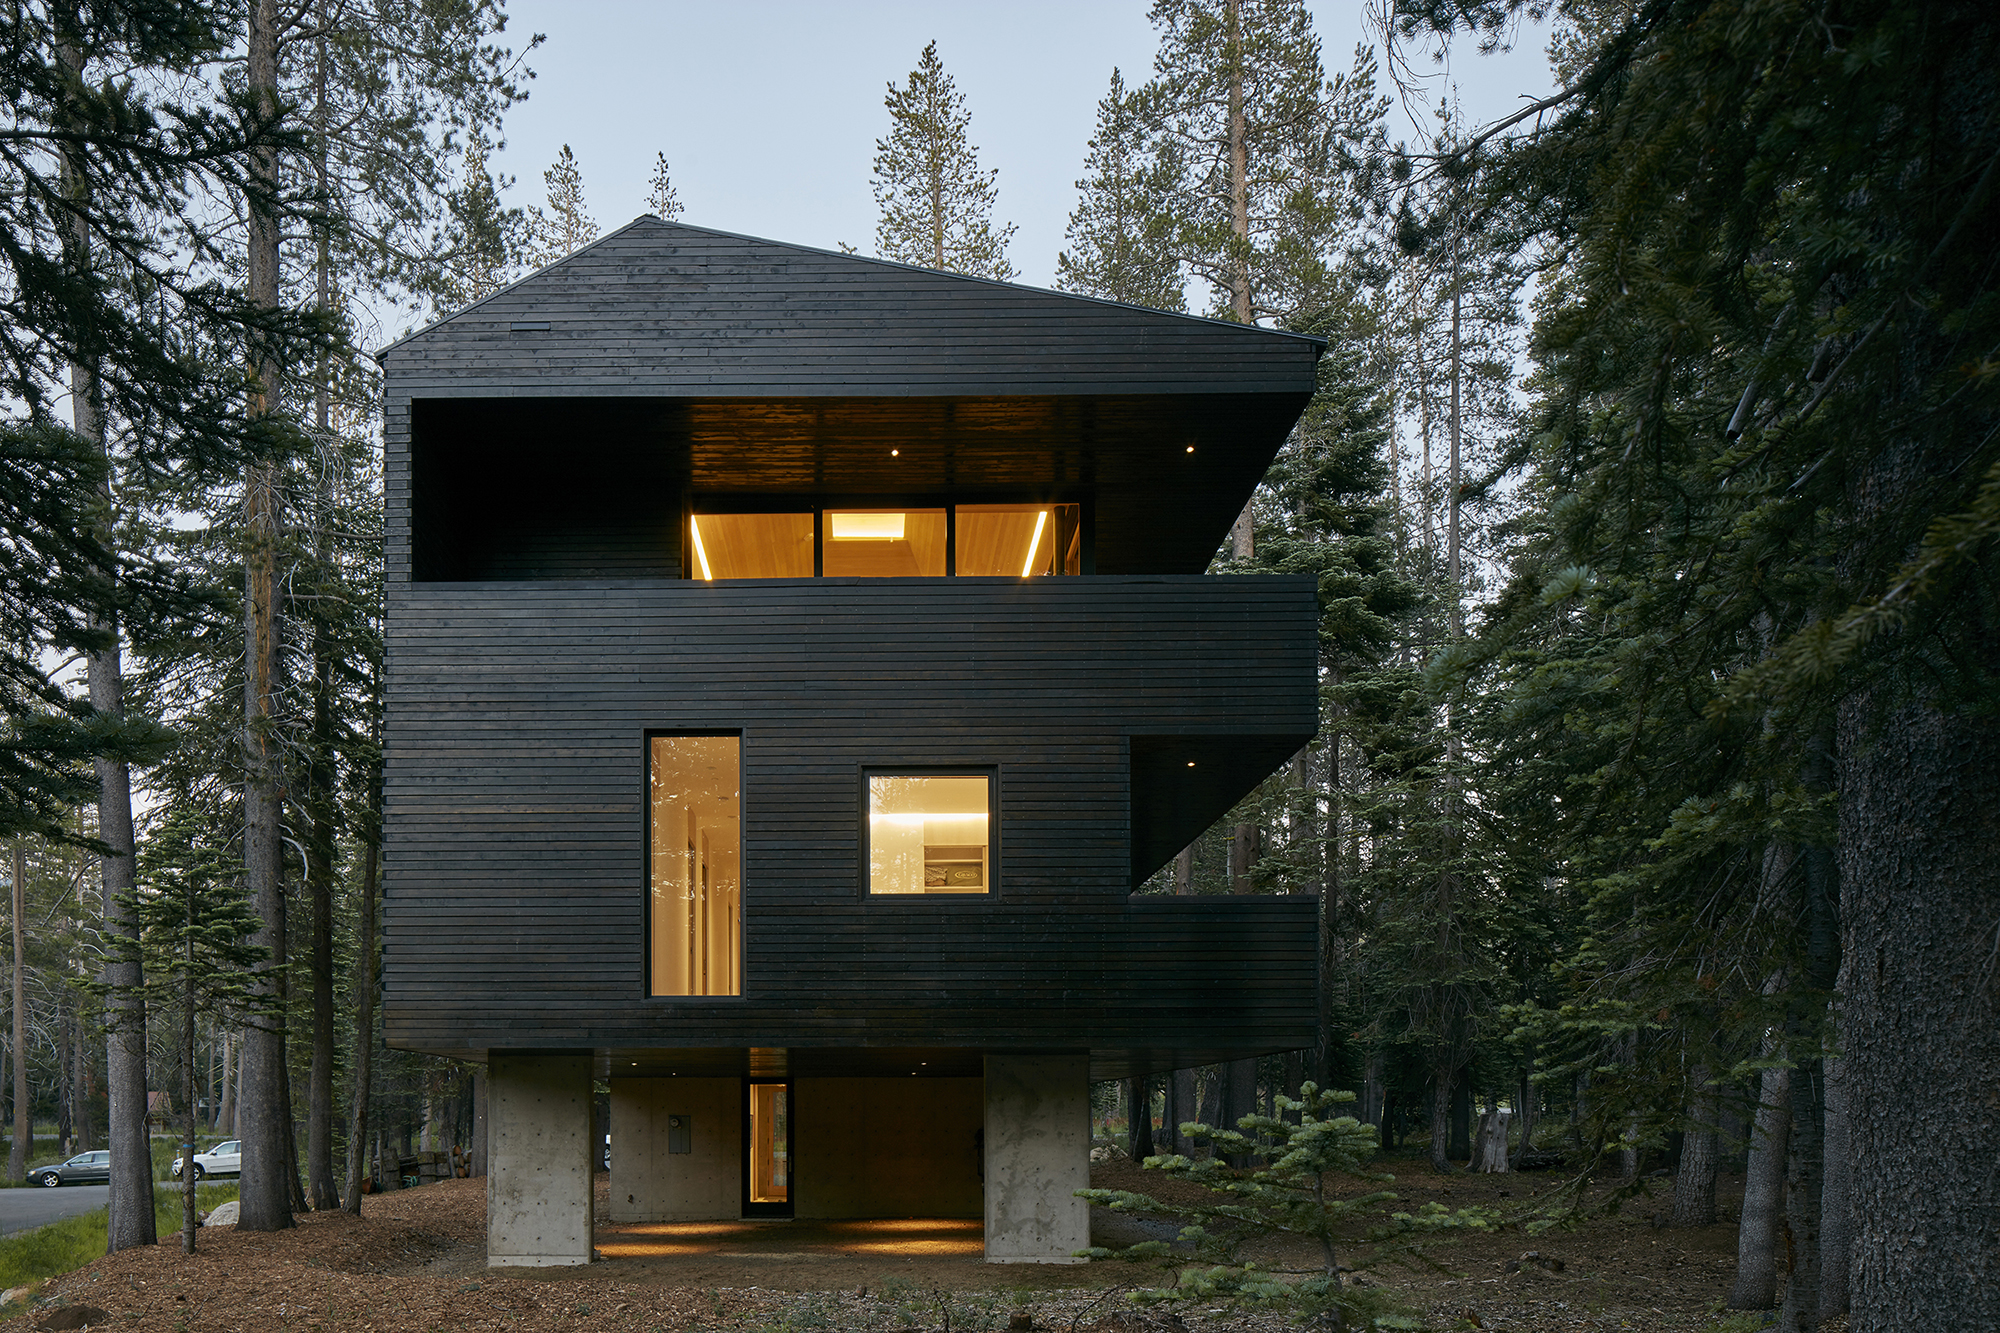 Troll hus architect magazine mork ulnes architects for Residential architect design awards